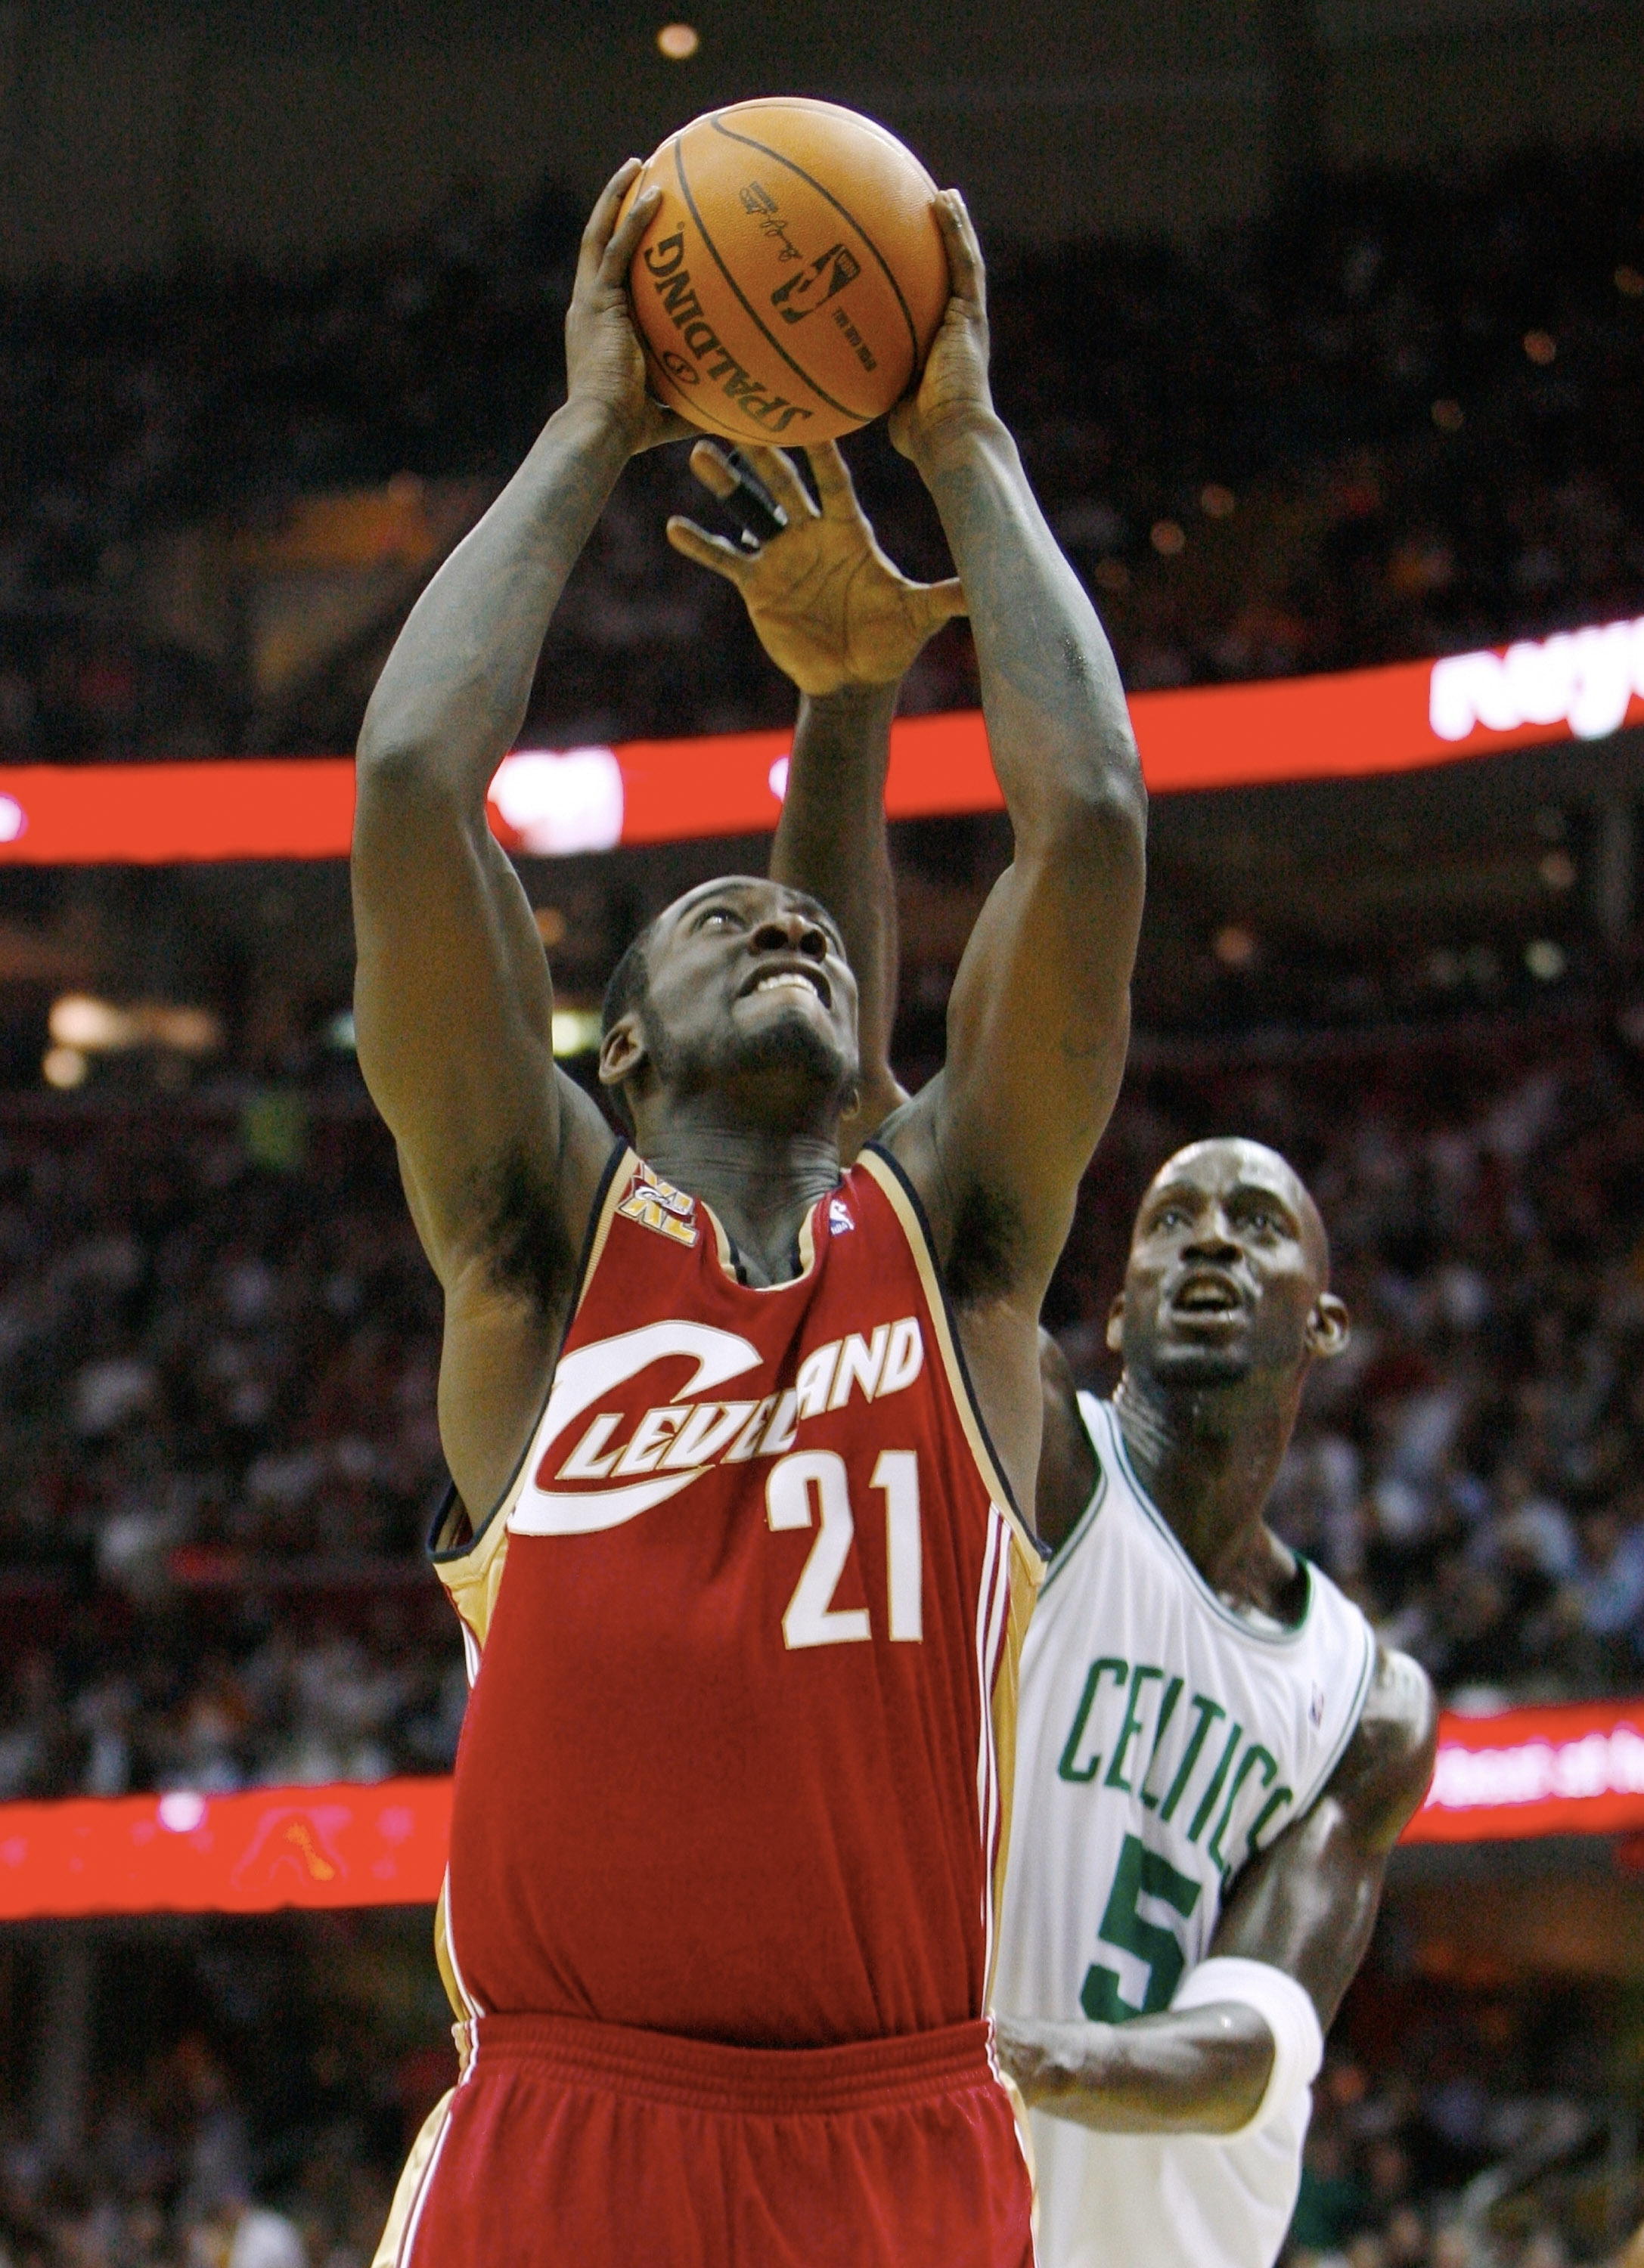 CLEVELAND - OCTOBER 27:  J.J. Hickson #21 of the Cleveland Cavaliers puts up a shot against Kevin Garnett #5 of the Boston Celtics during the season opener at Quicken Loans Arena on October 27, 2009 in Cleveland, Ohio.  NOTE TO USER: User expressly acknow